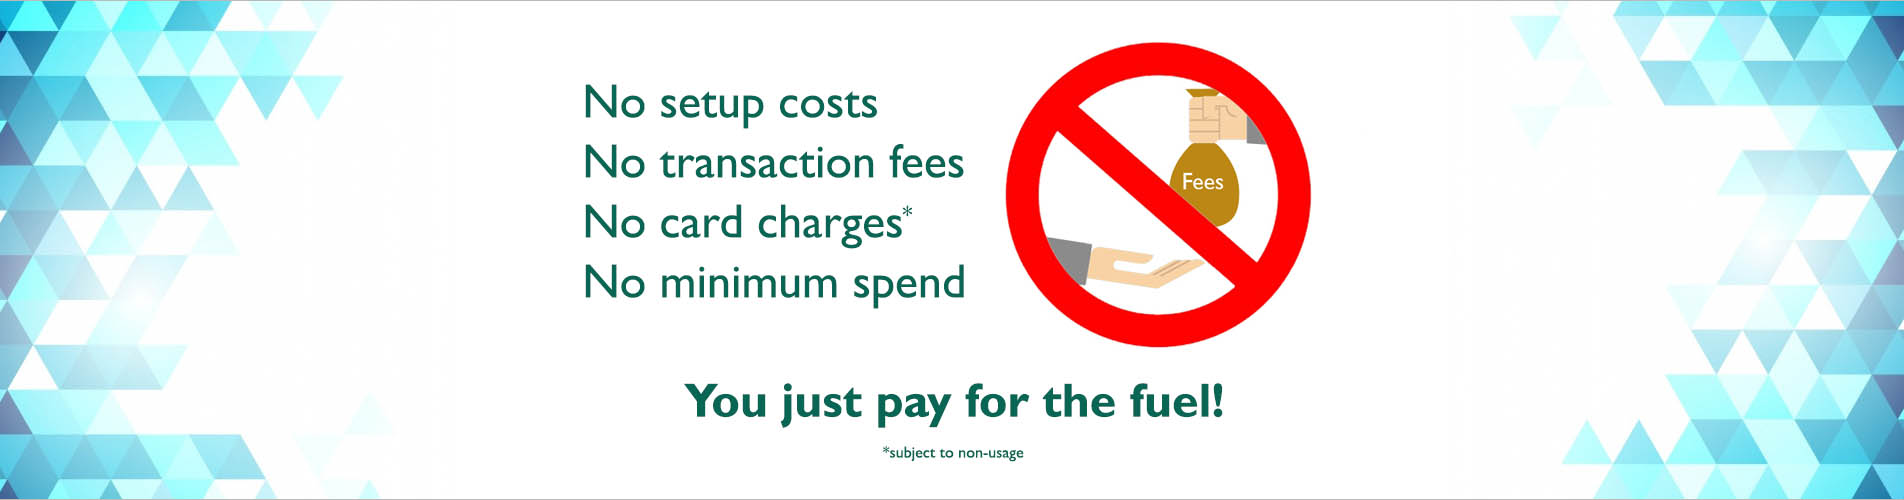 you just pay for the fuel